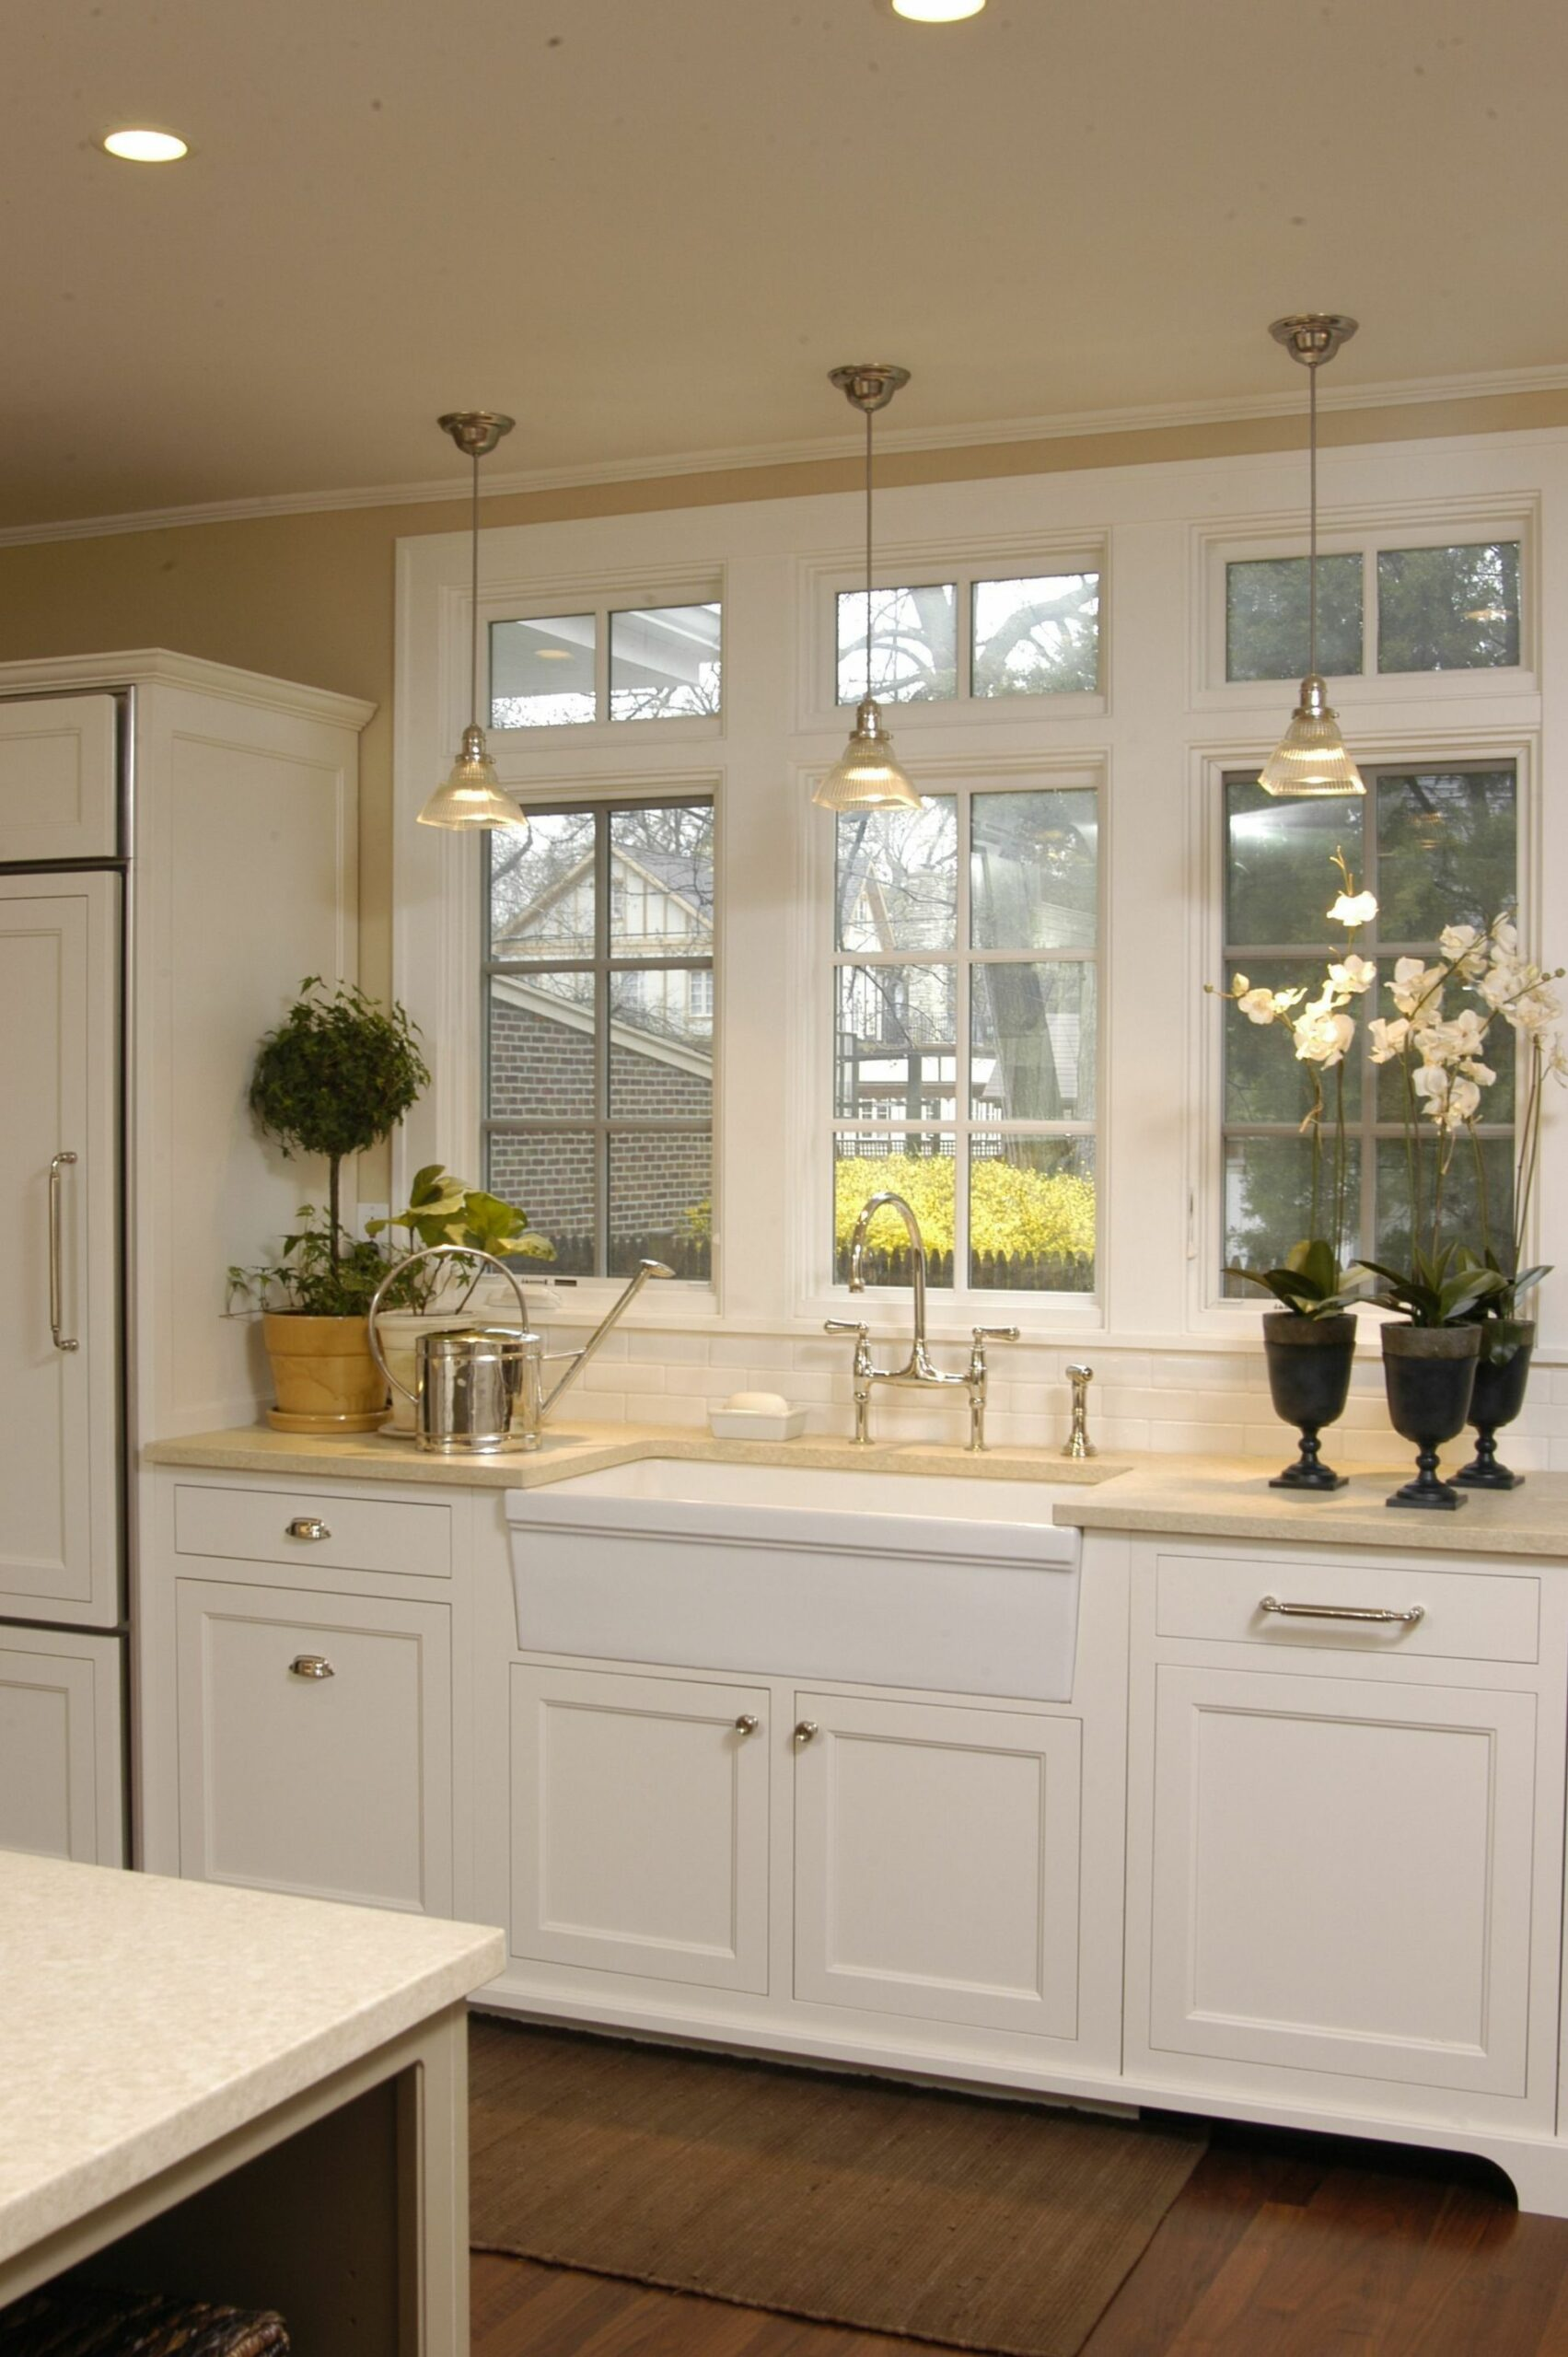 Large Kitchen Window Over Sink 10   Kitchen remodel small, Tuscan ..